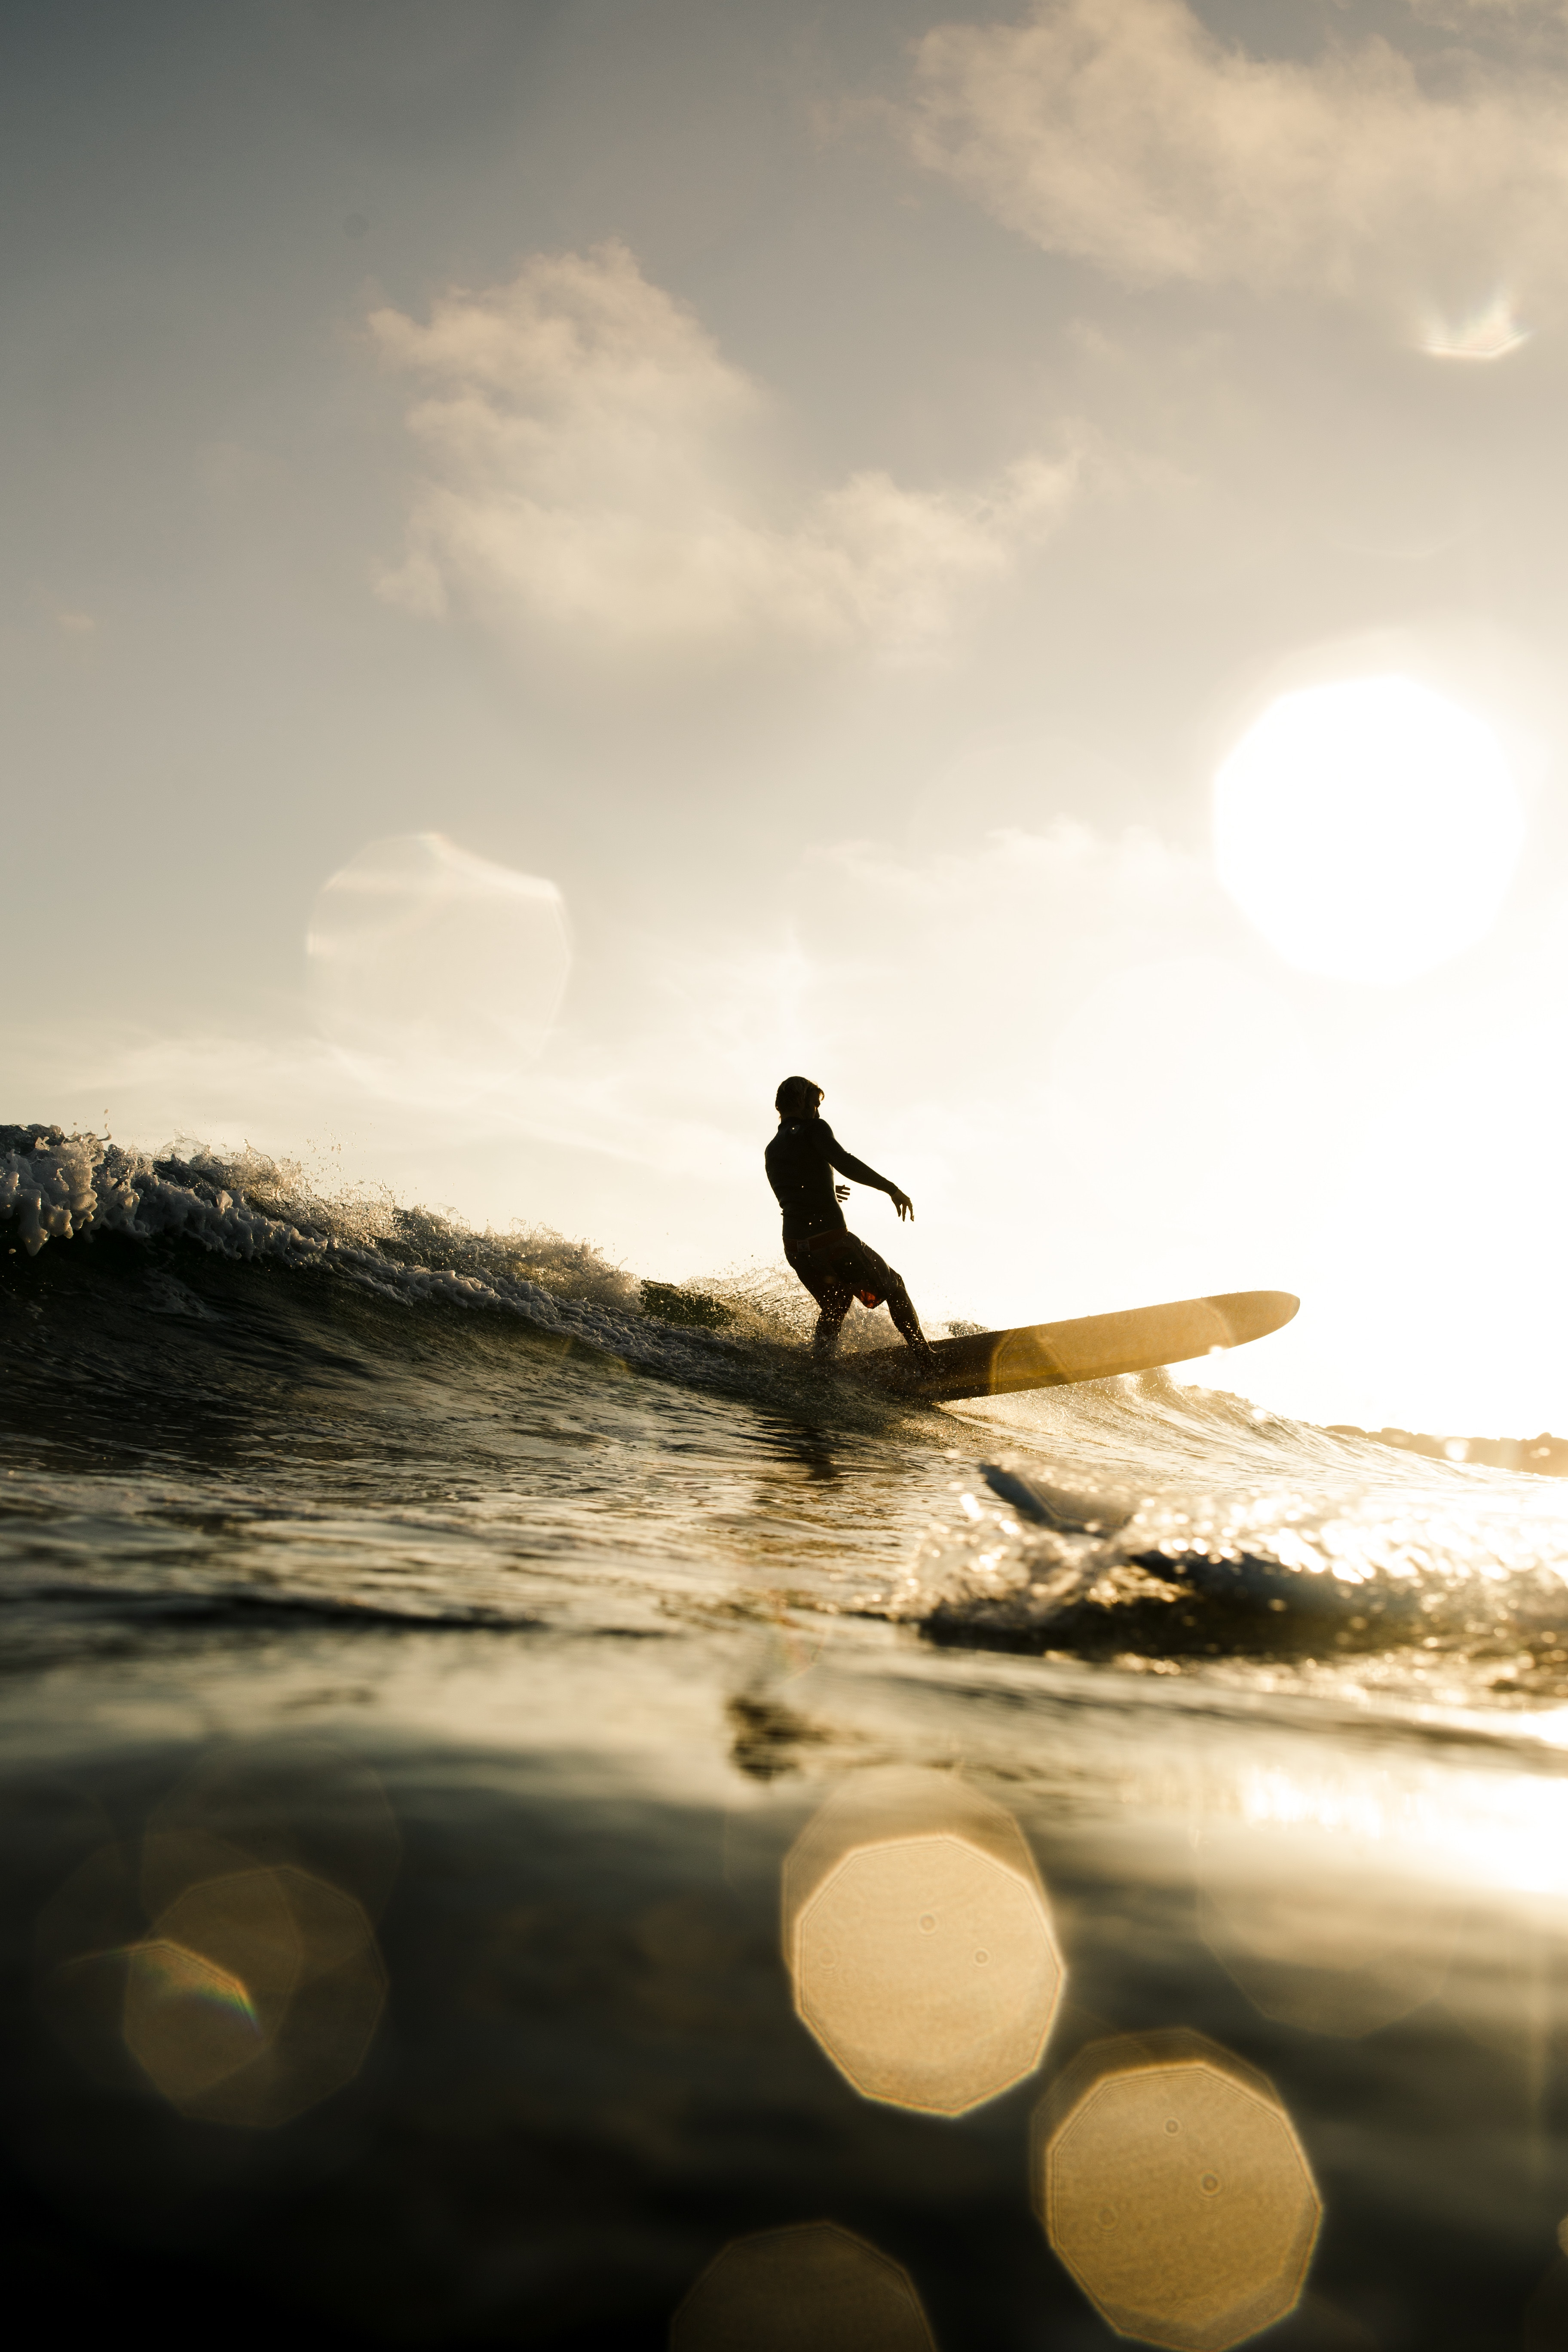 127762 download wallpaper Sports, Surfer, Serfing, Sunset, Glare, Bokeh, Boquet, Waves screensavers and pictures for free